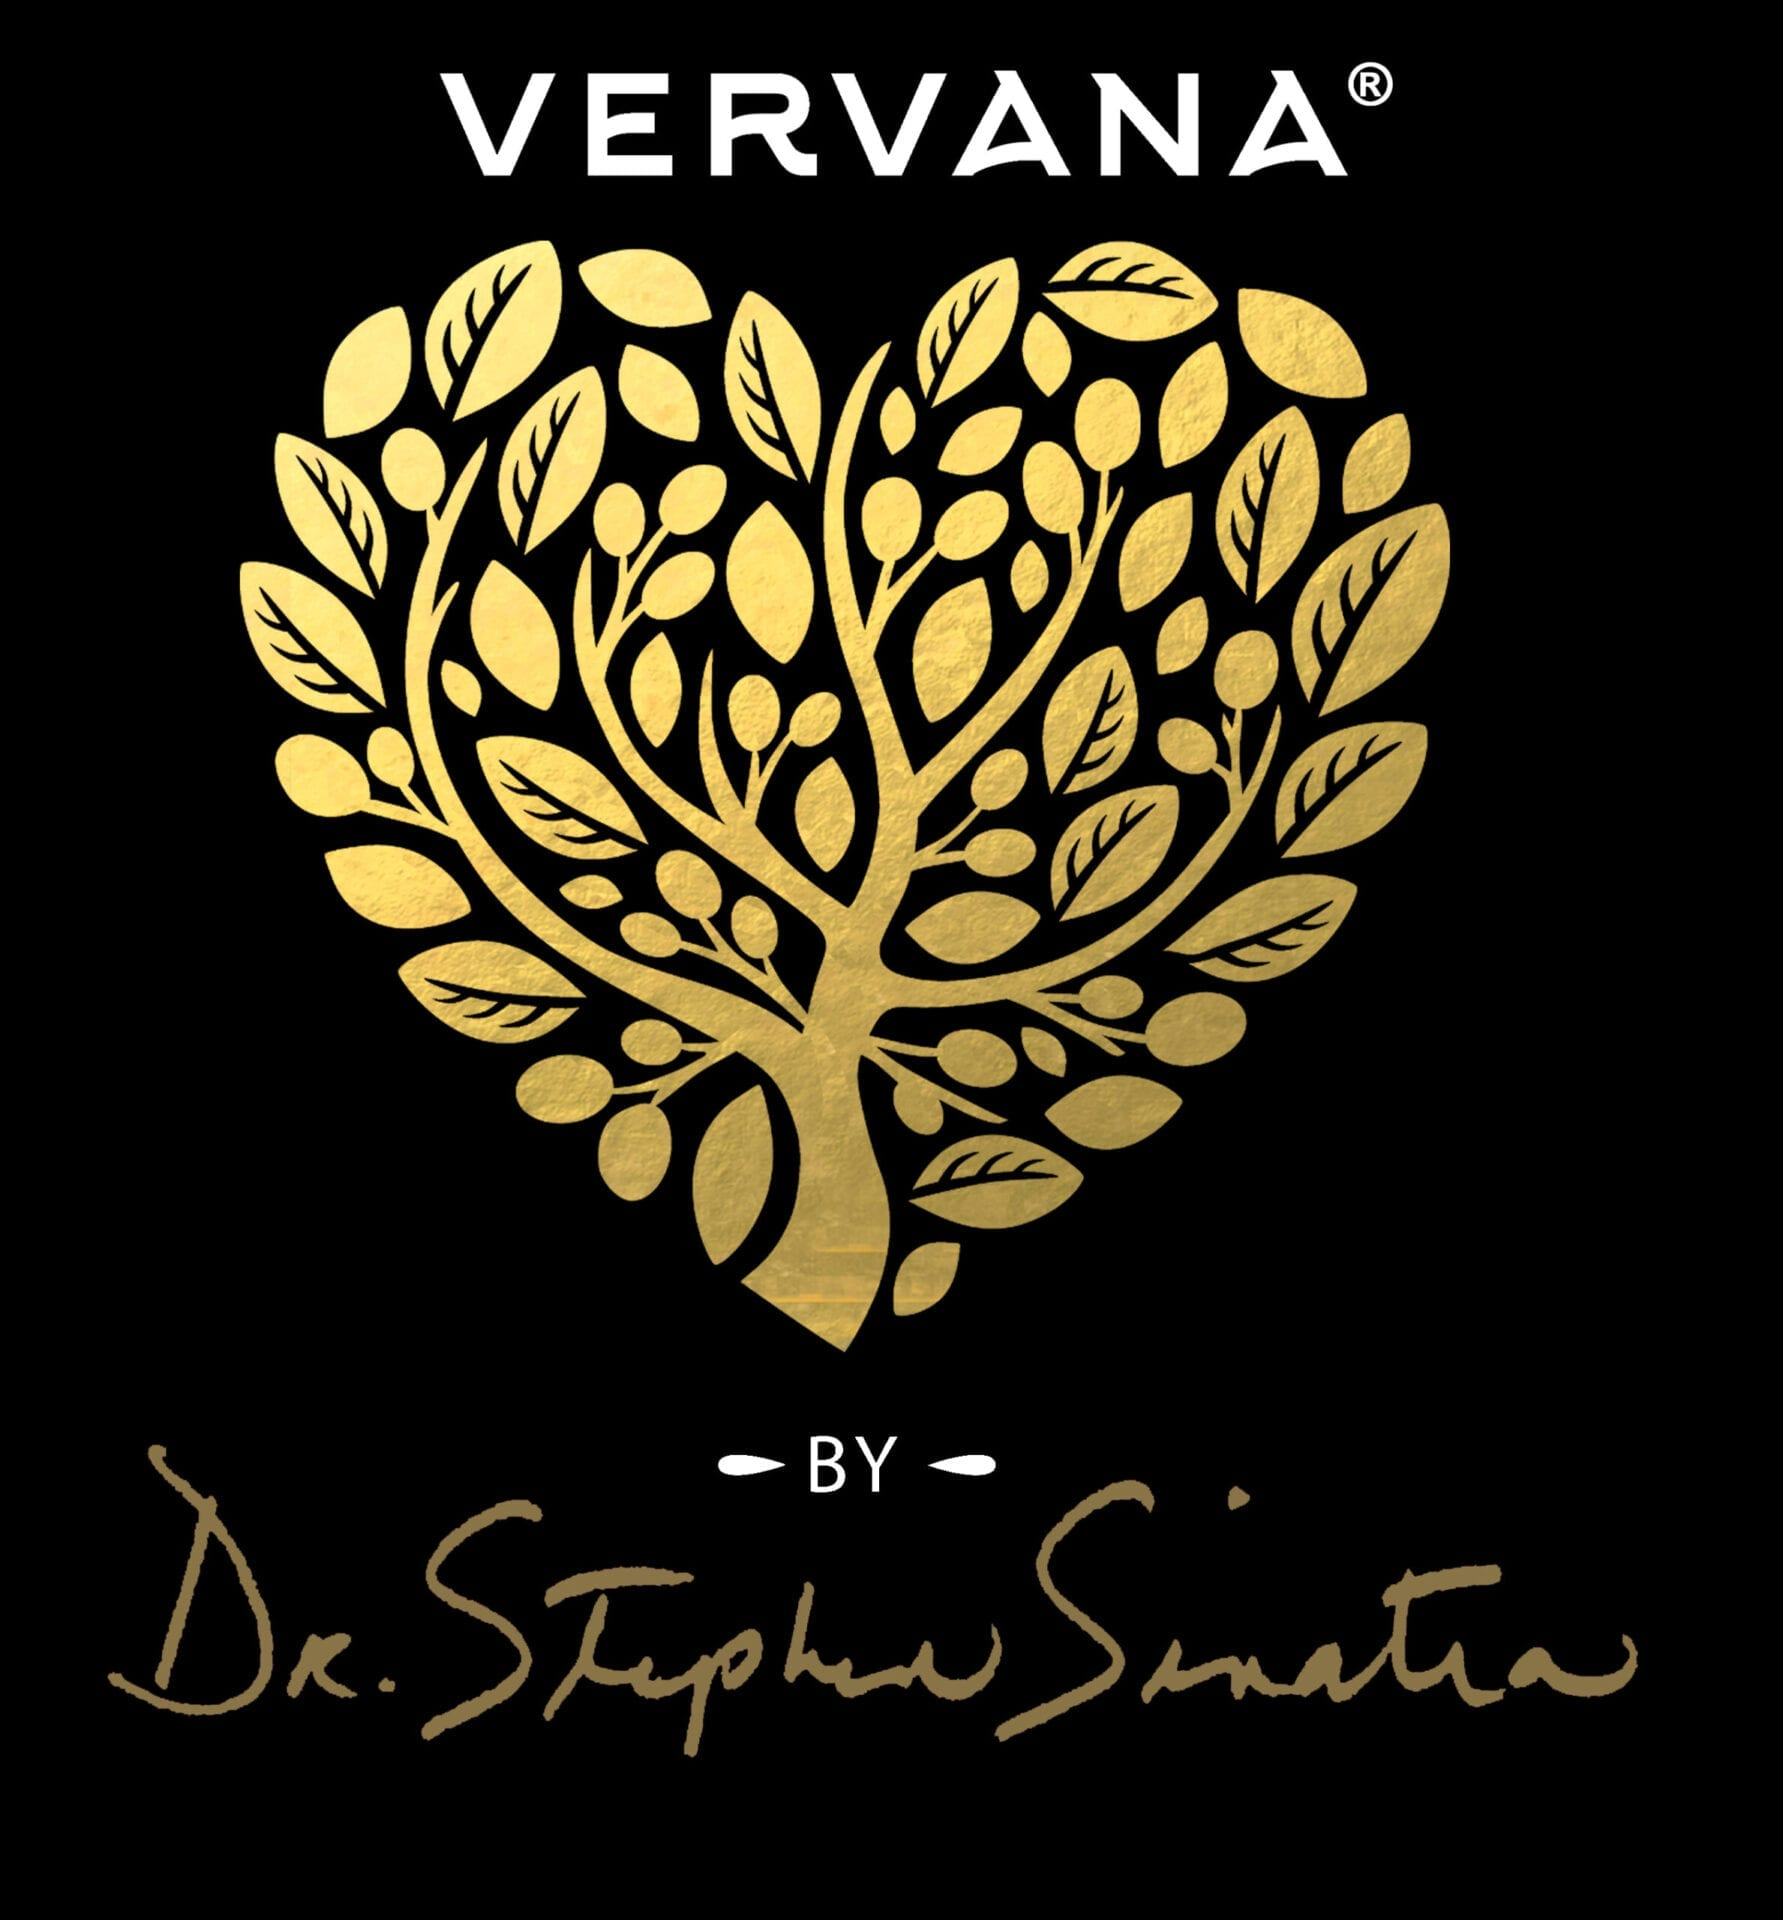 Mediterranean Superfoods for High Vibrational Living<br><br><strong>https://vervana.com/</strong>